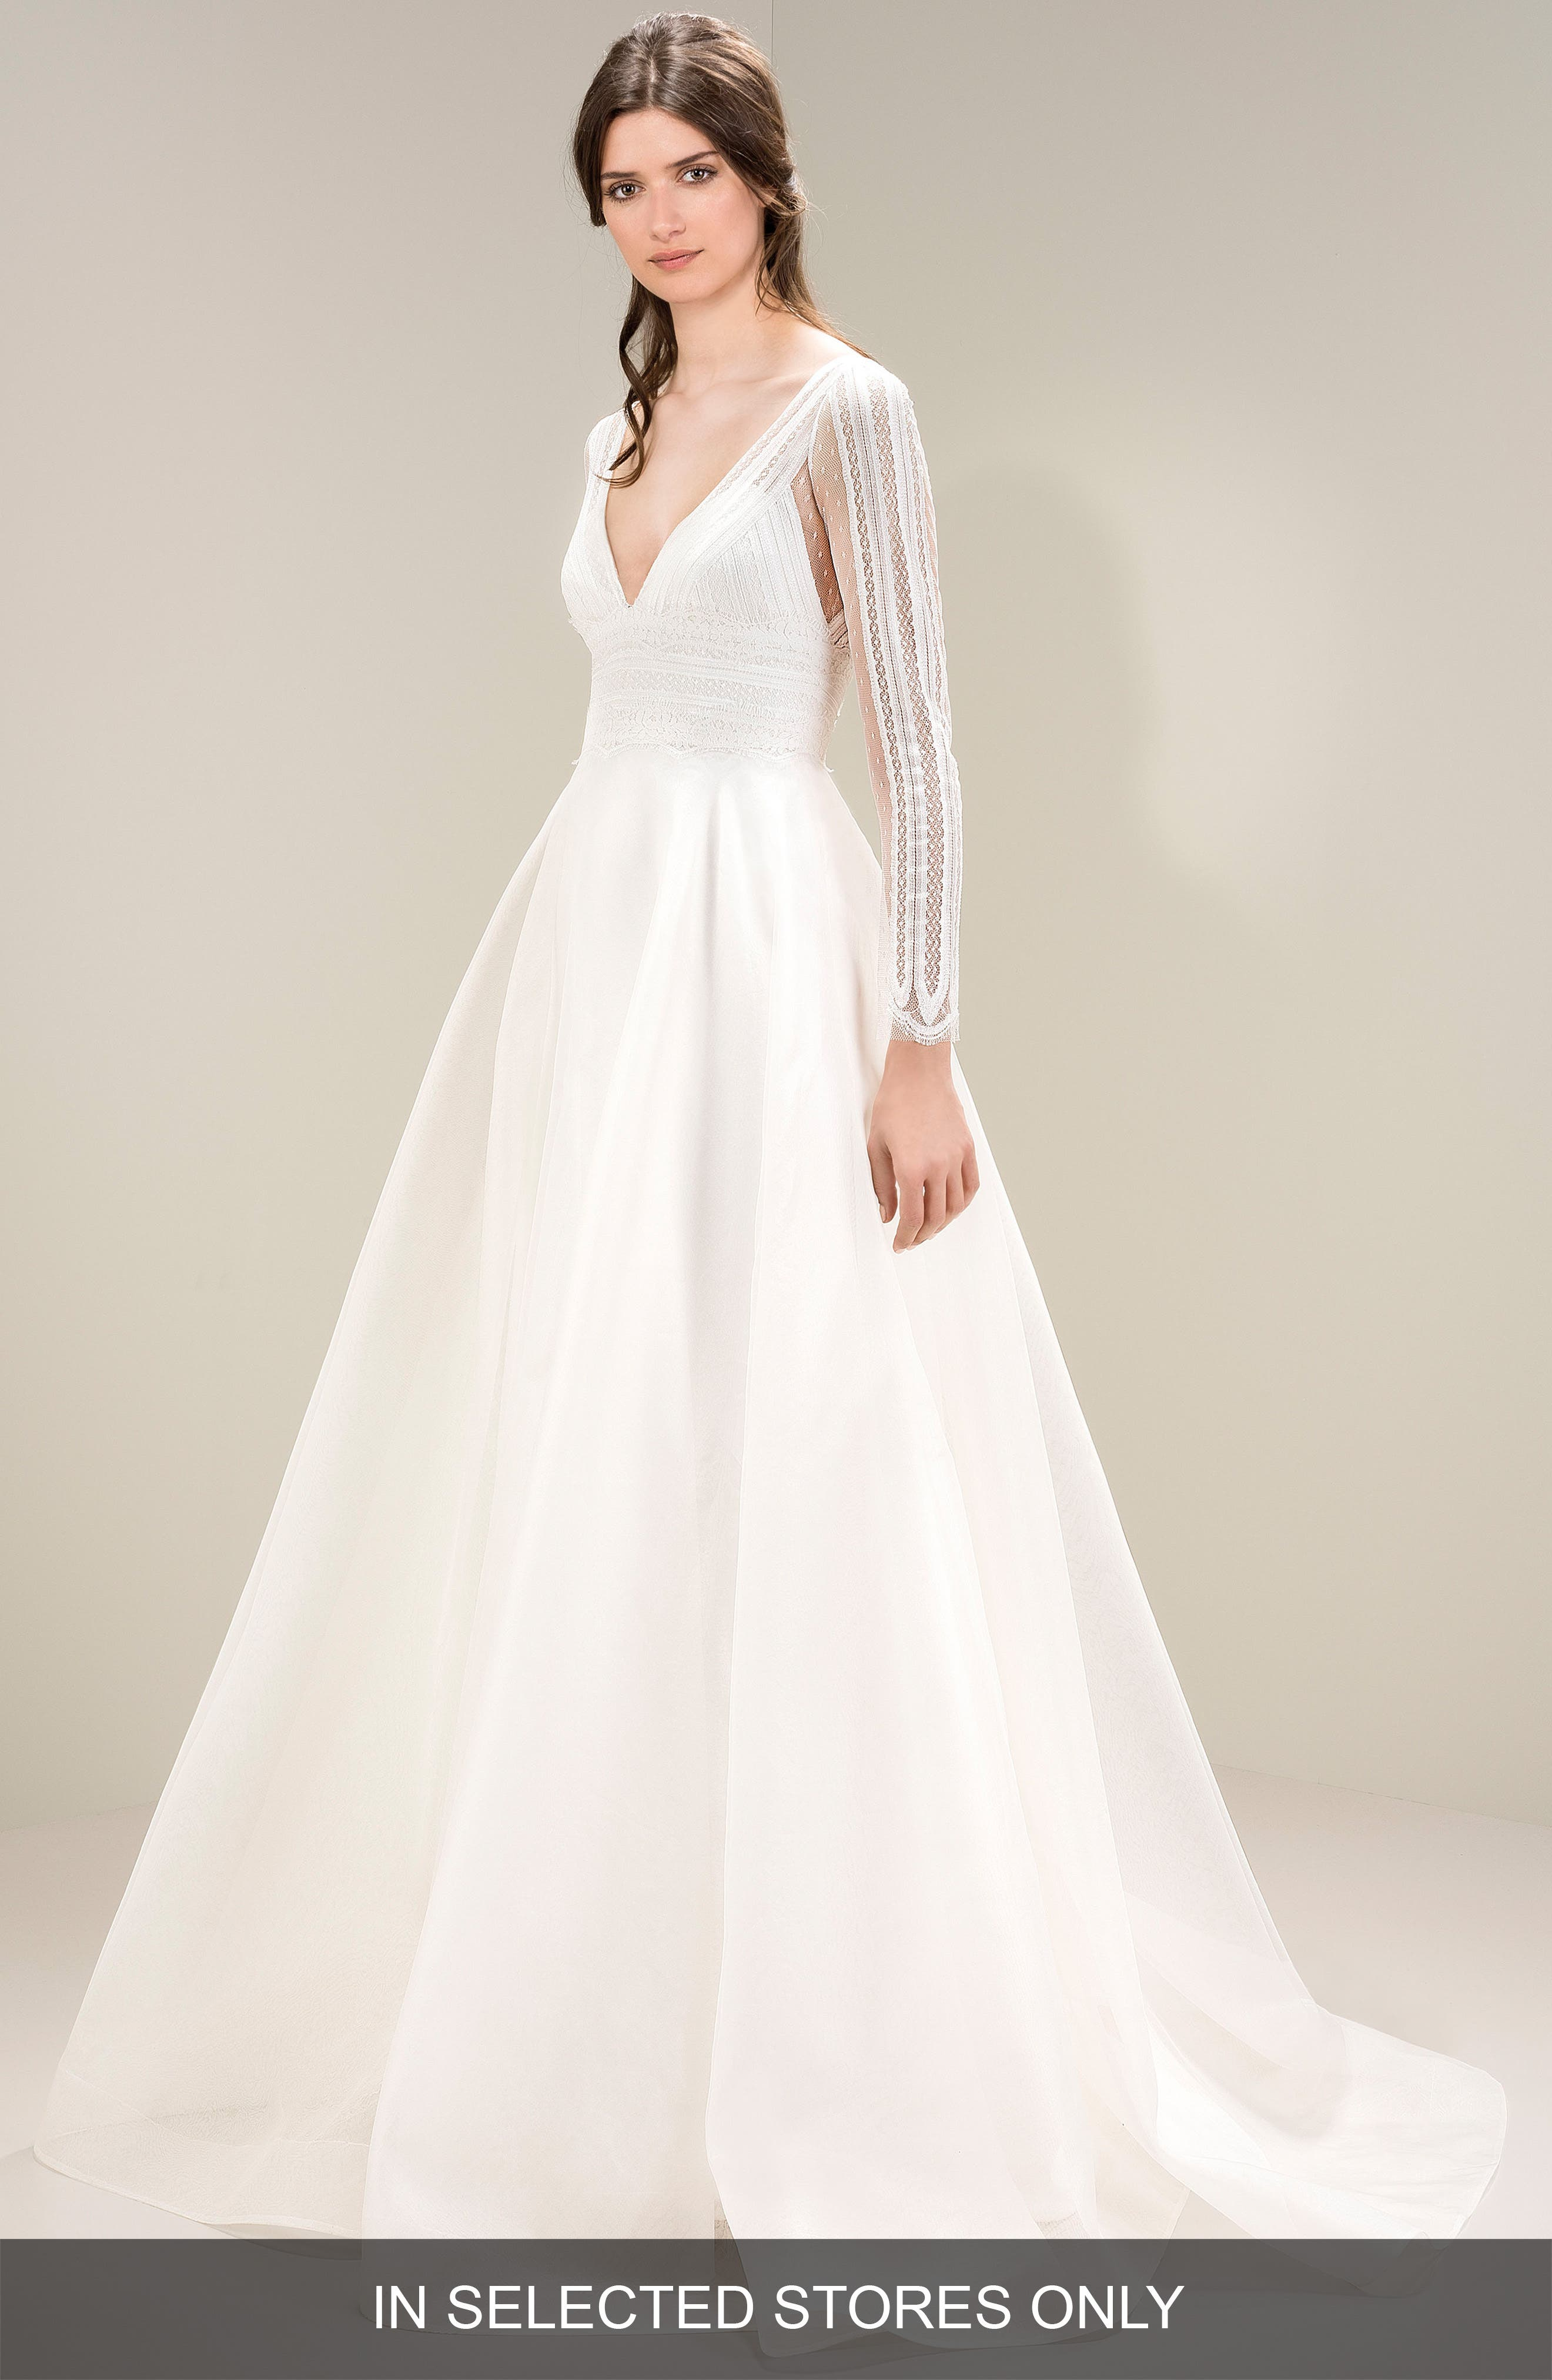 Chantilly Lace Gown,                             Main thumbnail 1, color,                             900